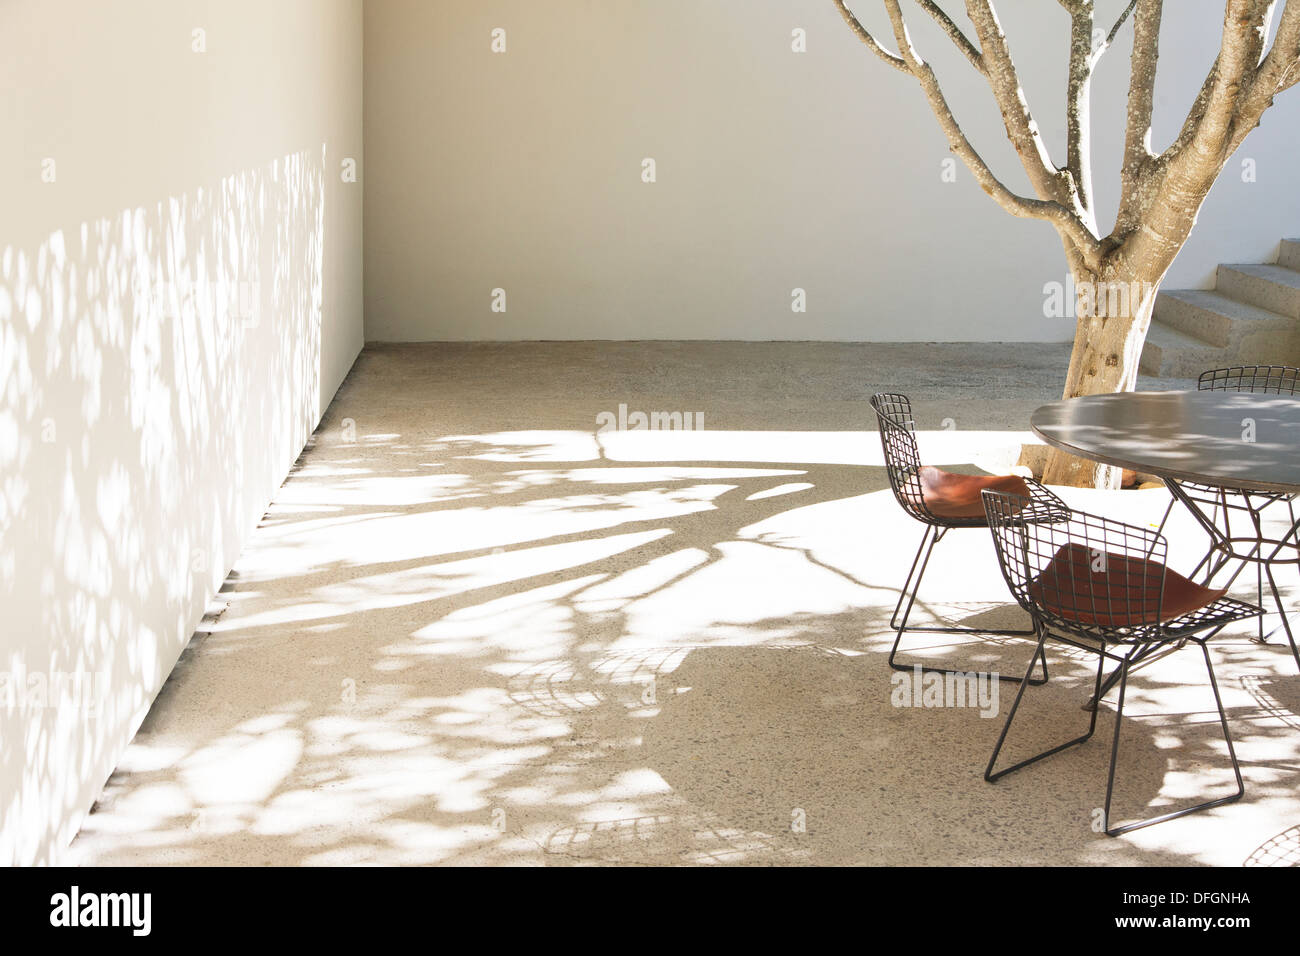 Table and chairs casting shadows in courtyard Stock Photo